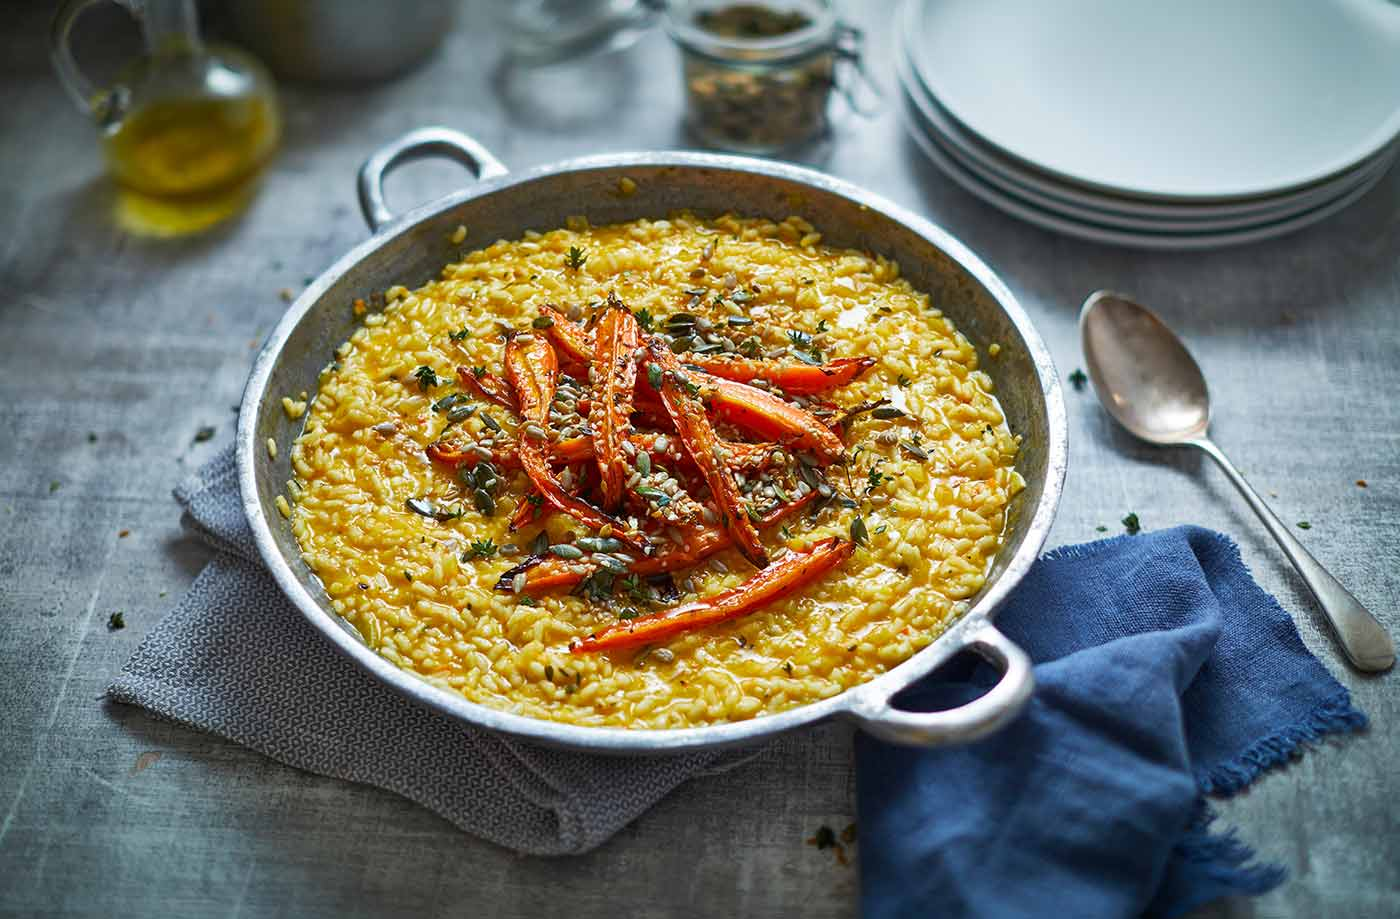 Vegan roasted carrot risotto recipe